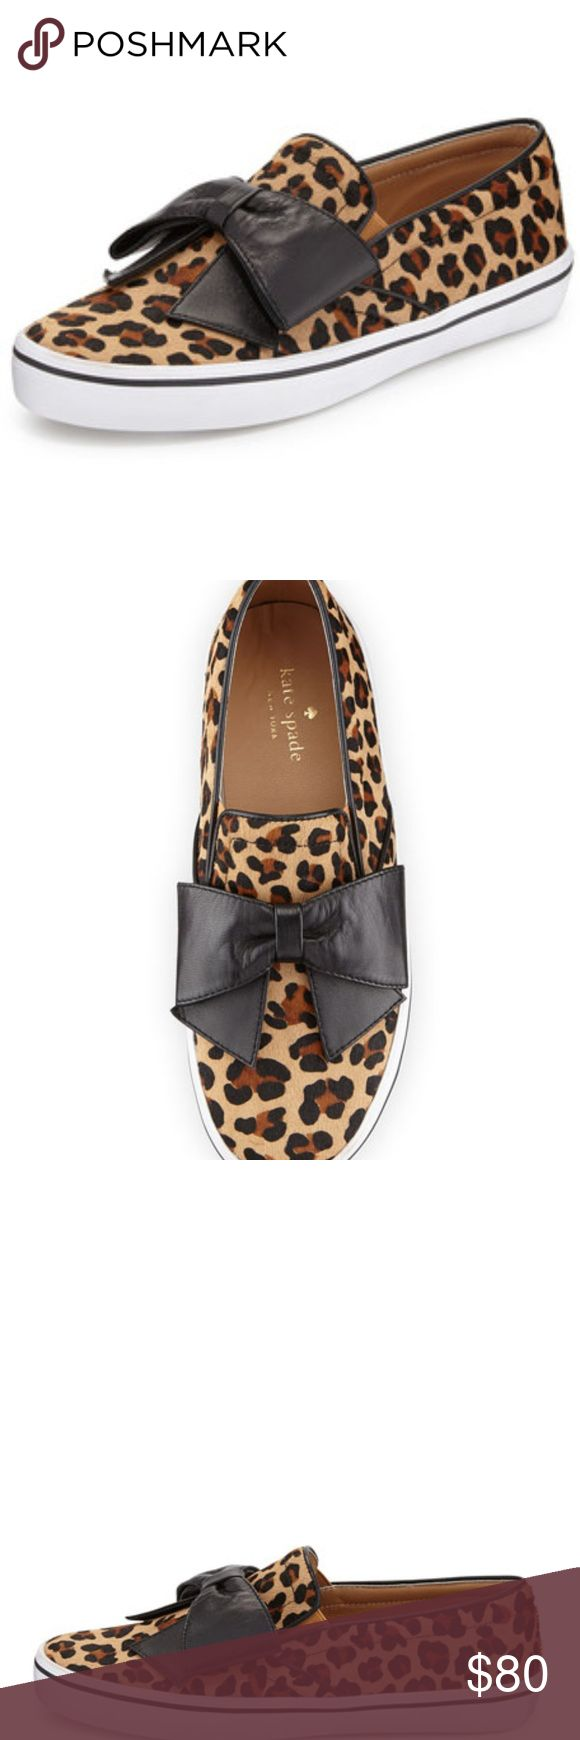 """New Kate Spade Animal Print Slipper Size 6 Brand: Kate Spade New York  Size: 6  Condition: New  Leopard-print calf hair gives this kate spade new york slip-on a fun, textured lift. kate spade new york leopard-print calf hair shoe. Dyed calf hair (China). Oversized napa leather bow at vamp. Notched vamp with elastic insets. Leather lining and insole. Flat rubber sole for traction. """"delise"""" is imported kate spade Shoes Slippers"""